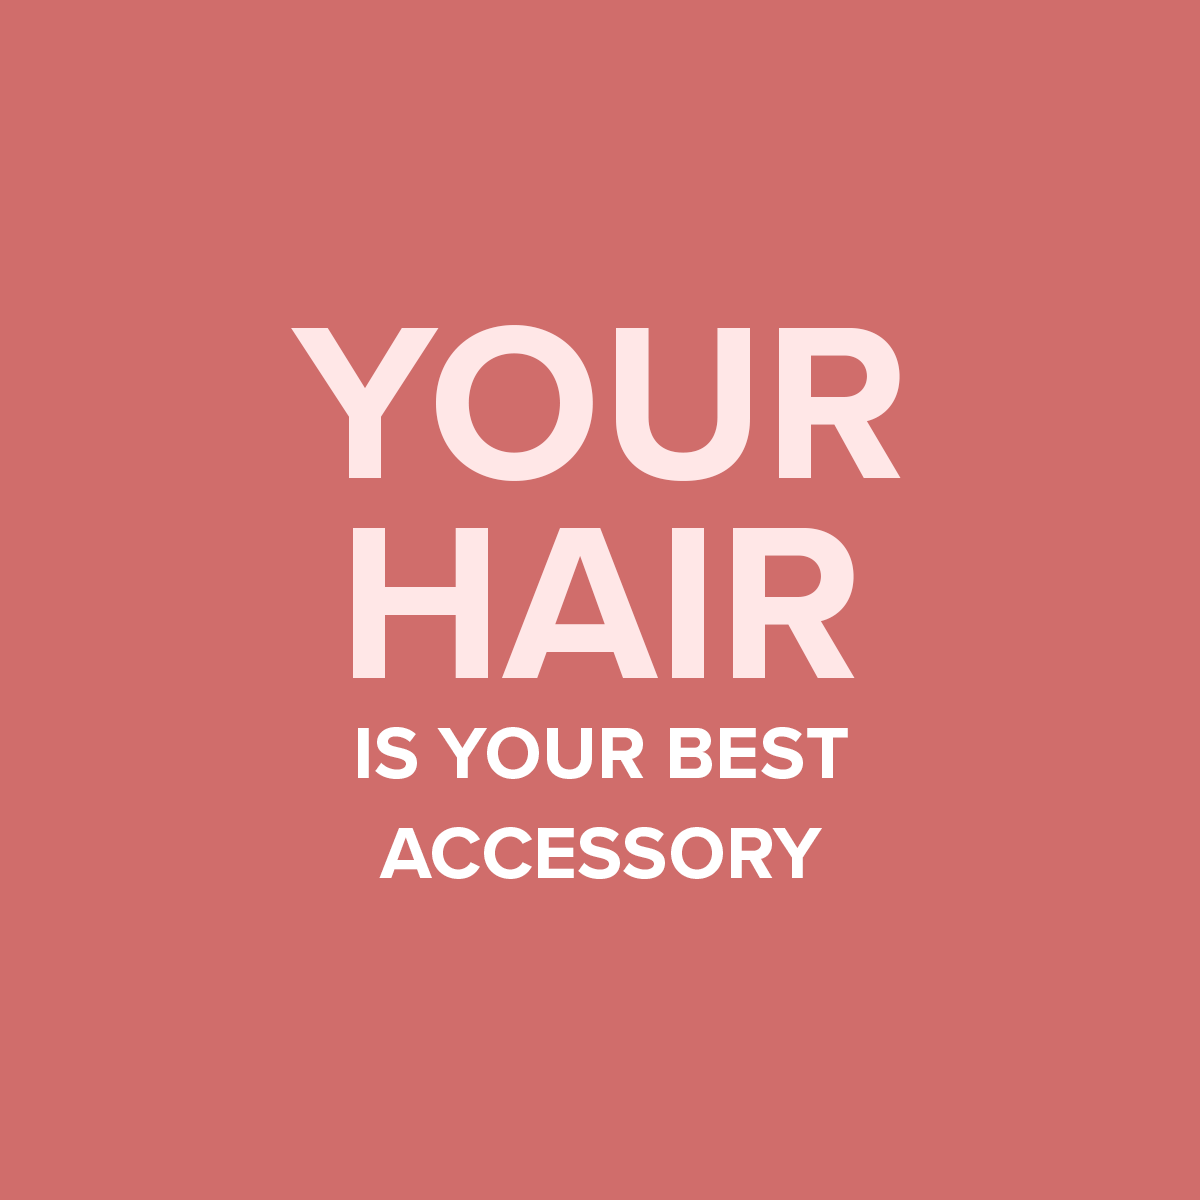 Your hair is your best accessory